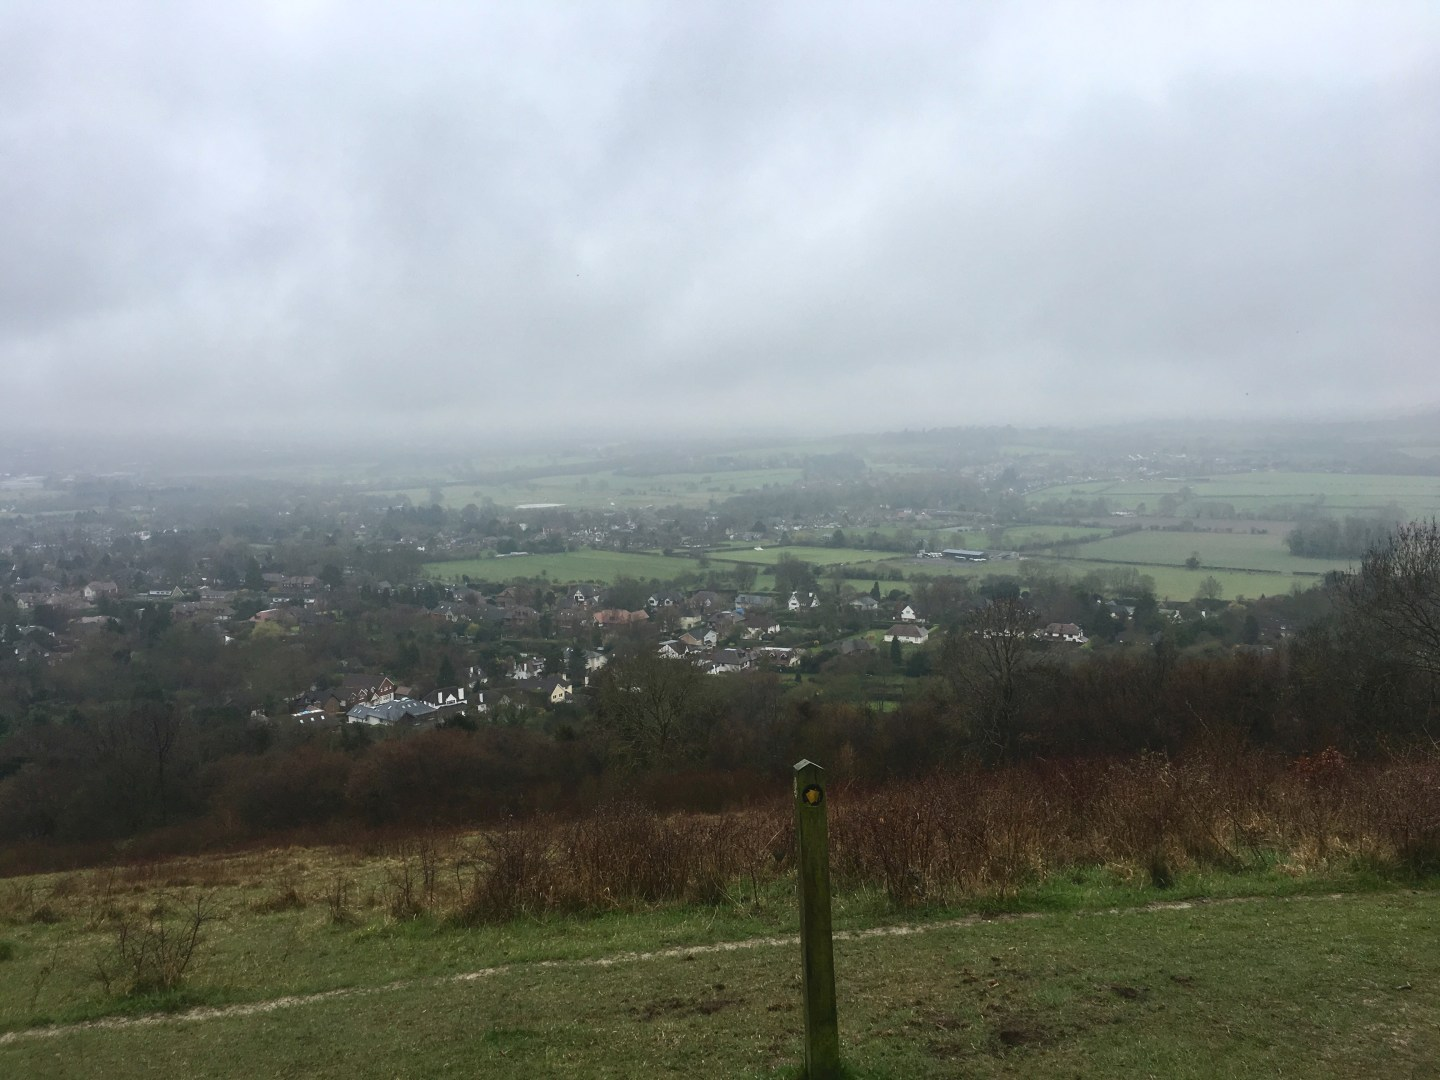 London Day Trip: Hiking the Eynsford Circular